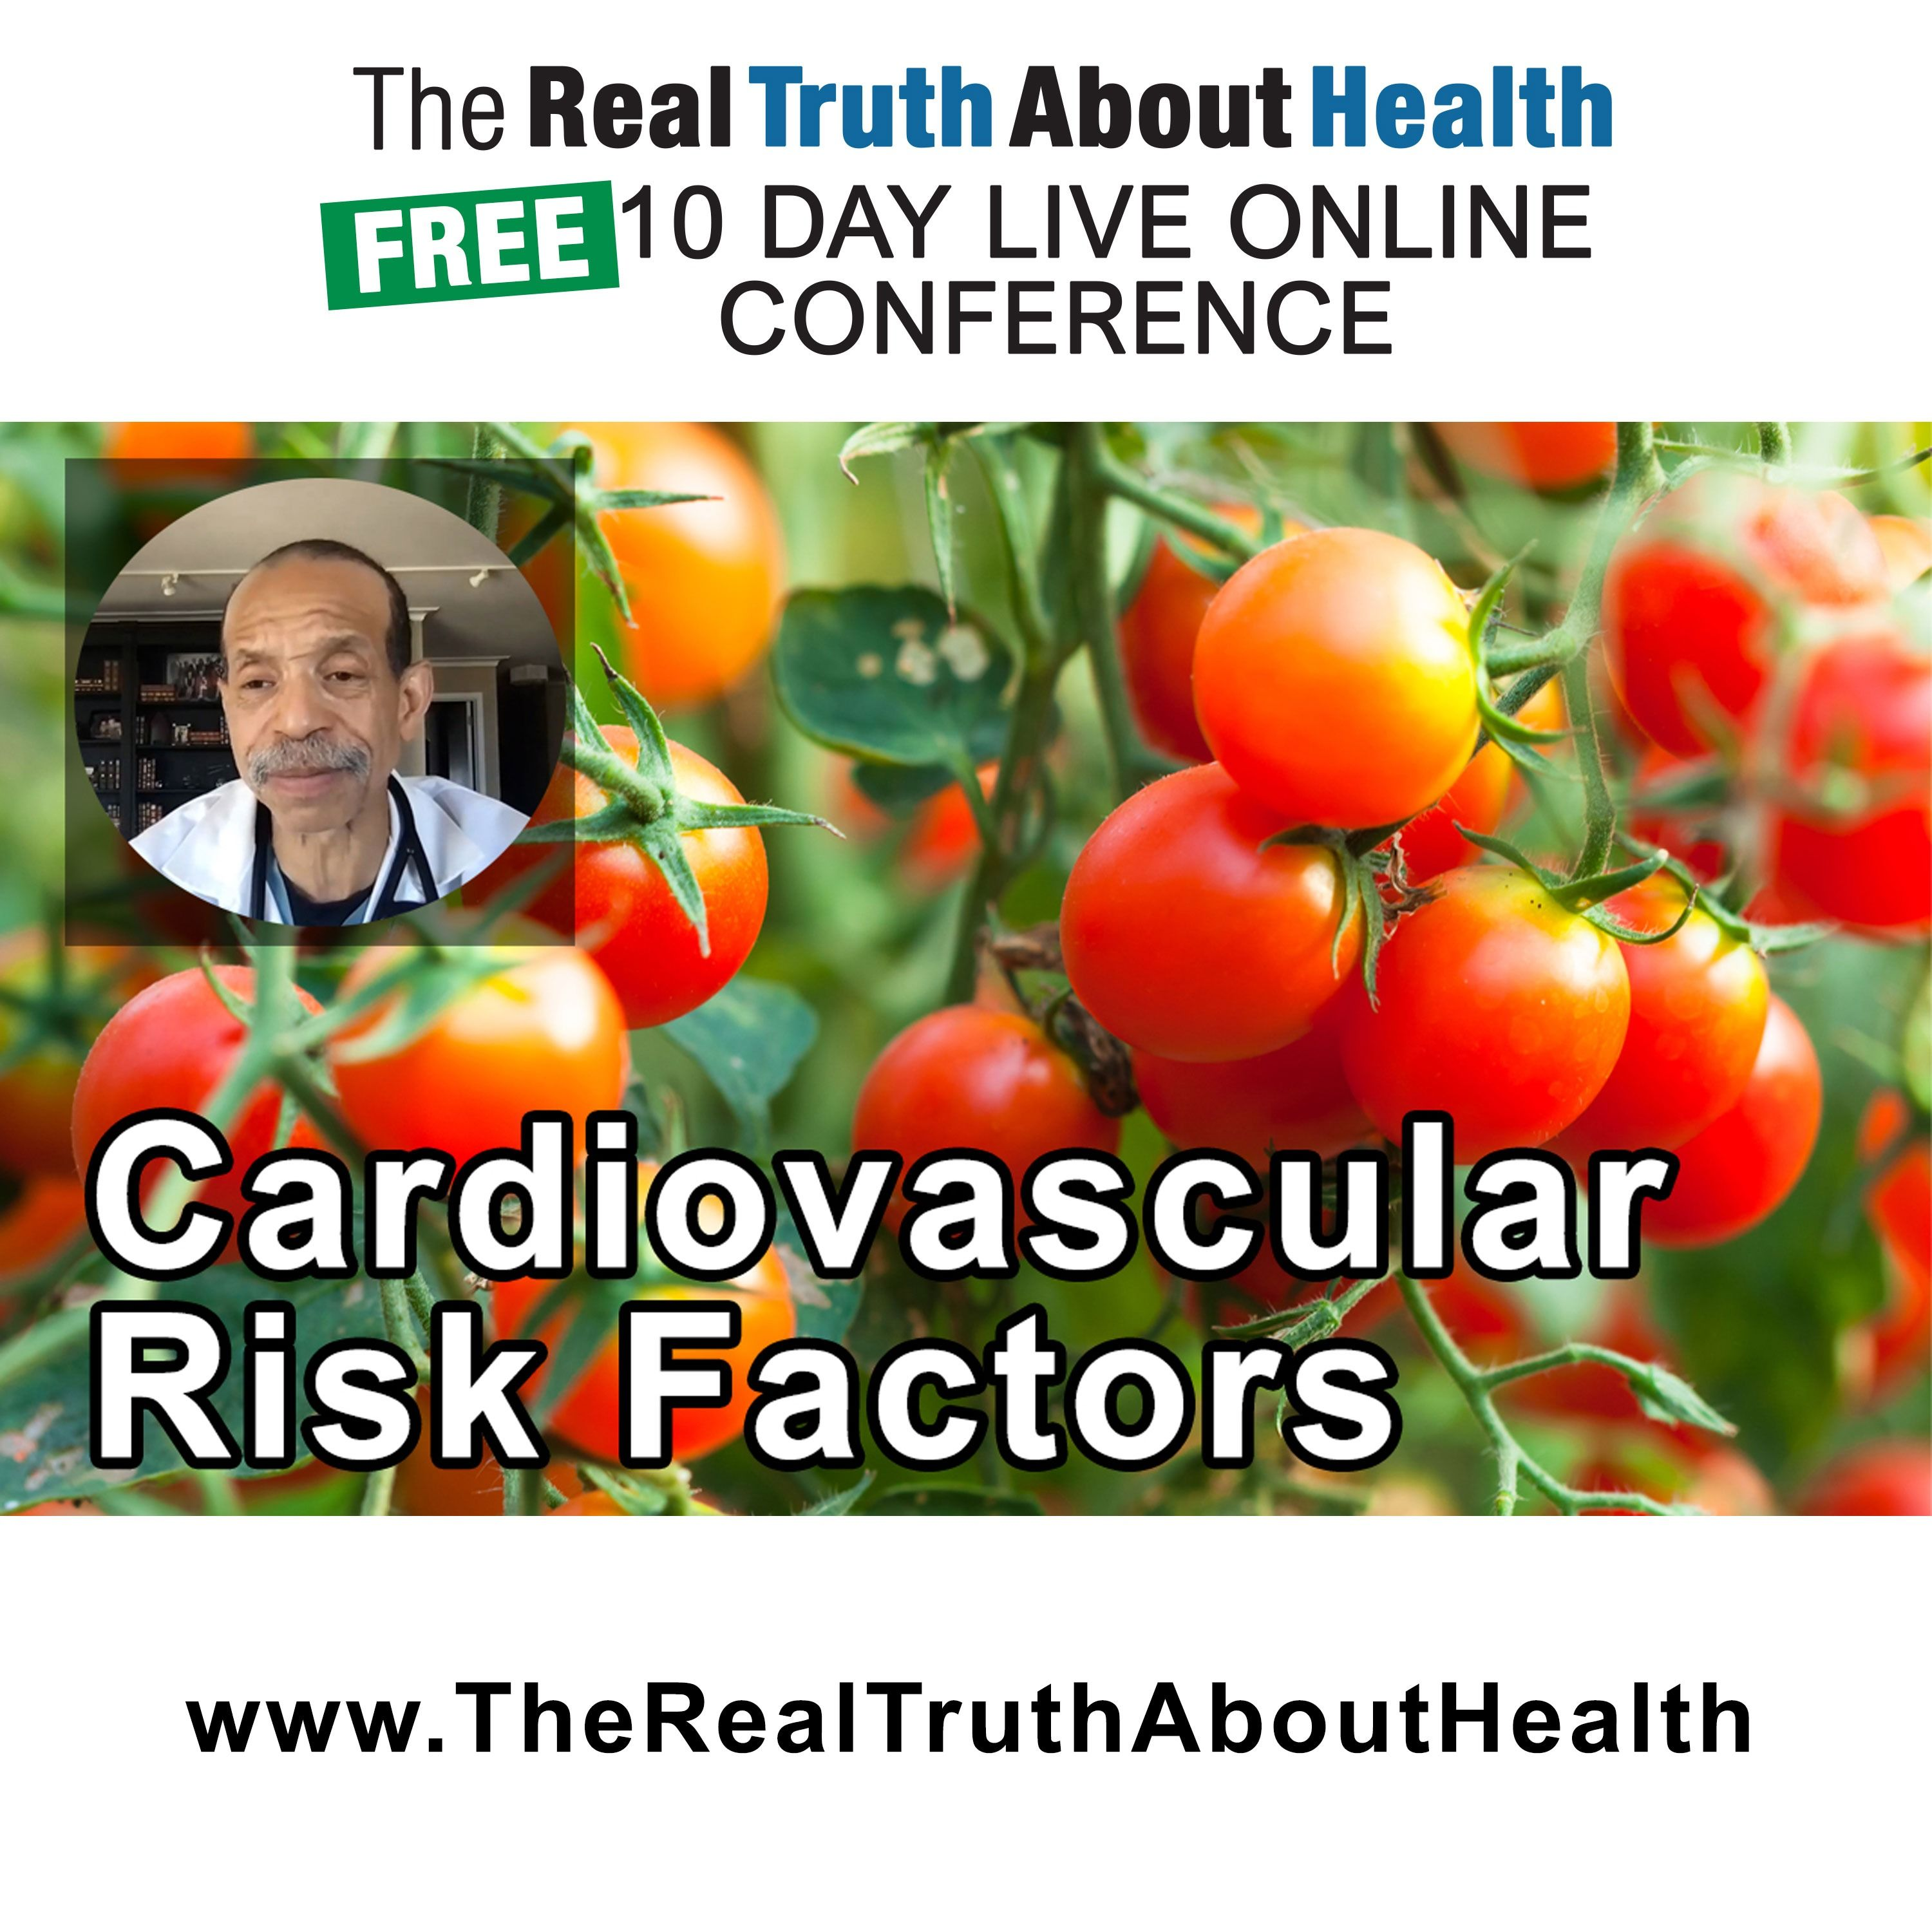 Cardiovascular Risk Factors, Ethnic Disparities, Covid-19, Mortality And Nutrition - by Kim Williams, M.D.